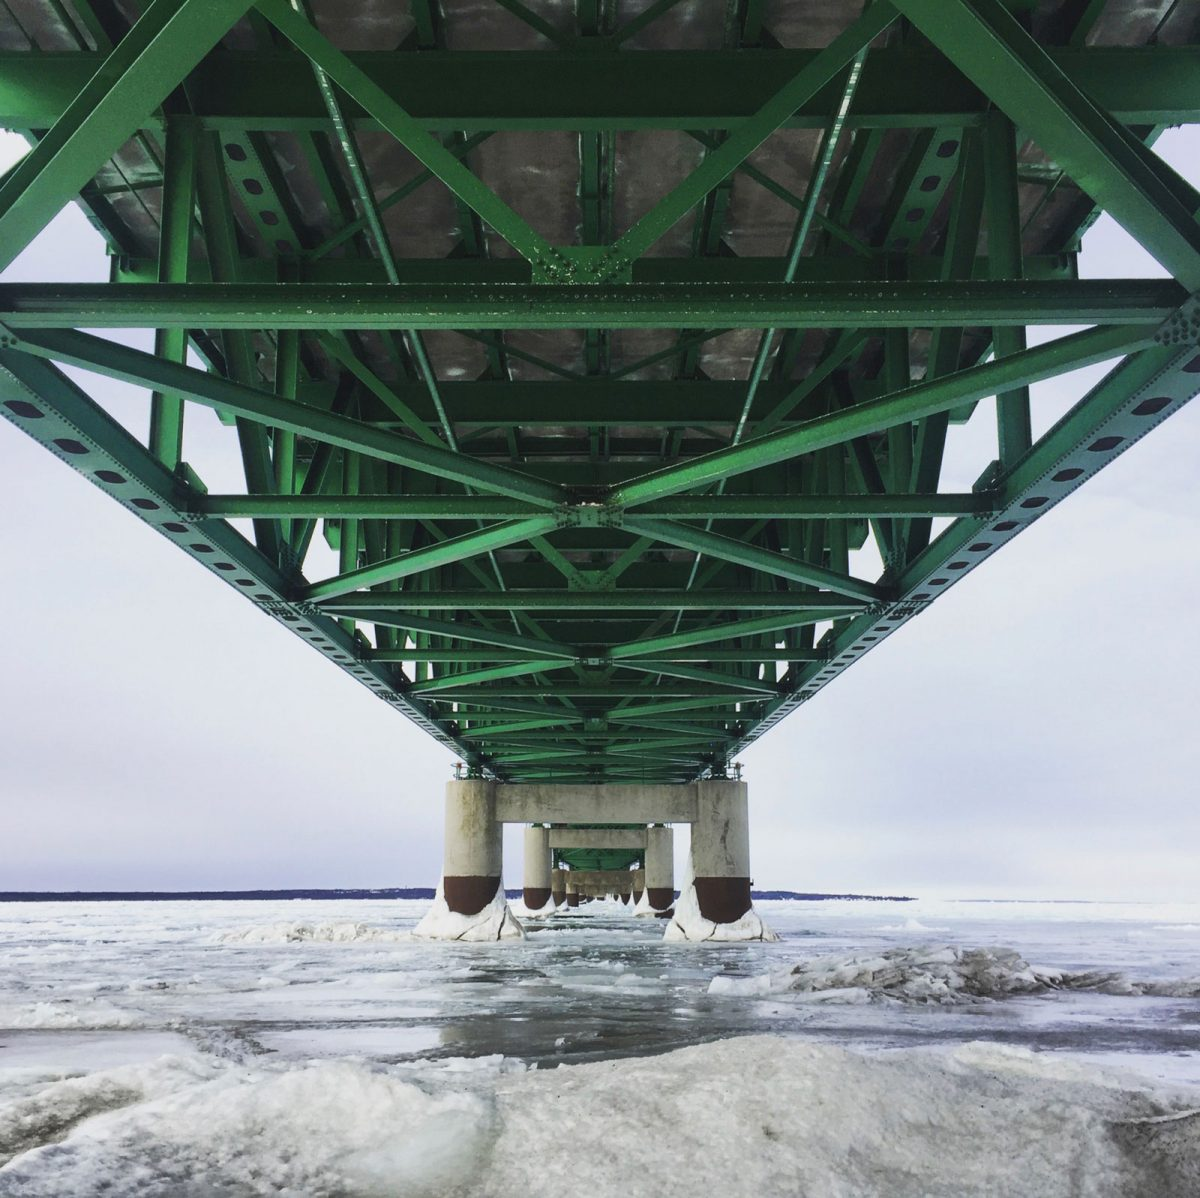 Mackinac Bridge in February for The Lady of the Lake is a story about being a michigander